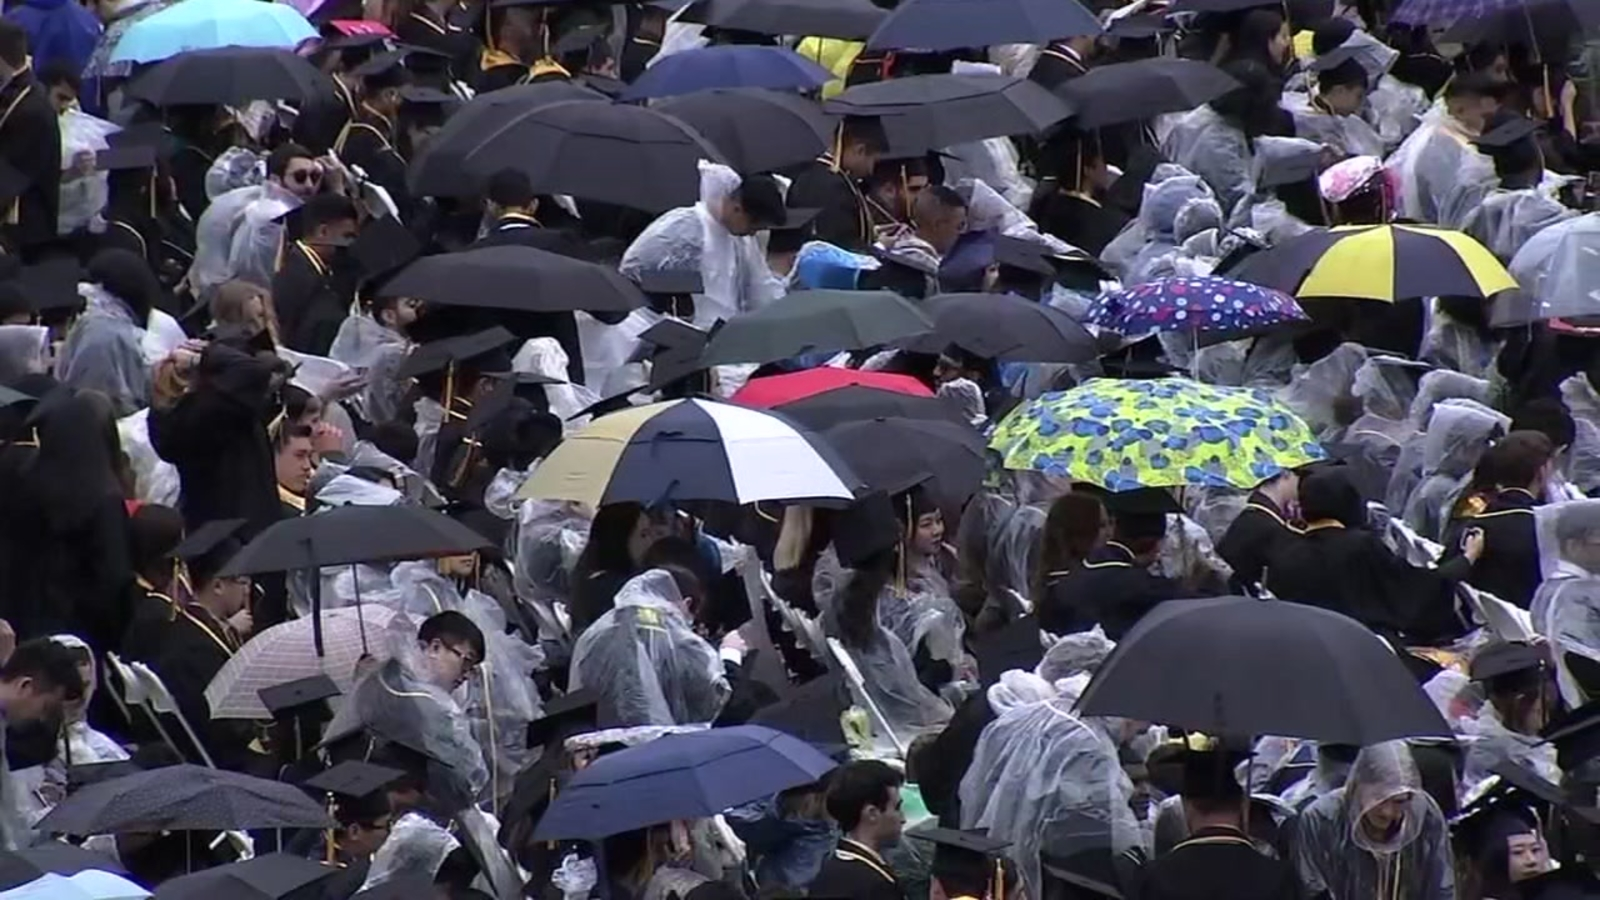 Bay Area gets soaked in second round of storms